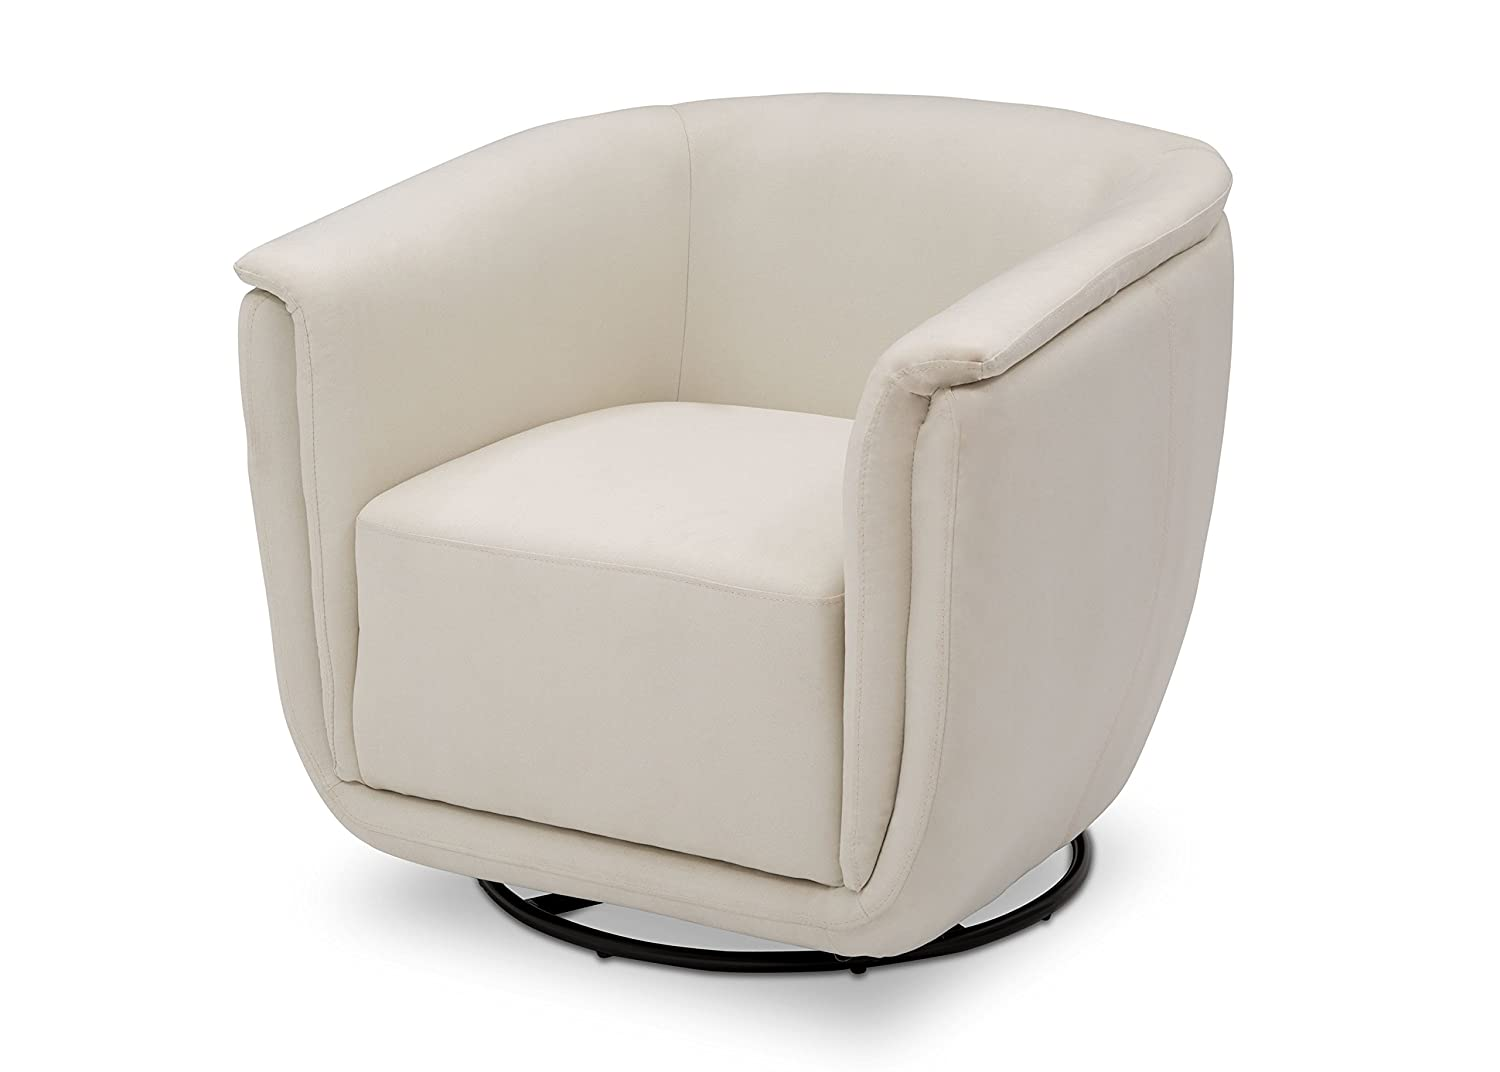 Delta Children Skylar Nursery Glider Swivel Rocker Tub Chair, Cream